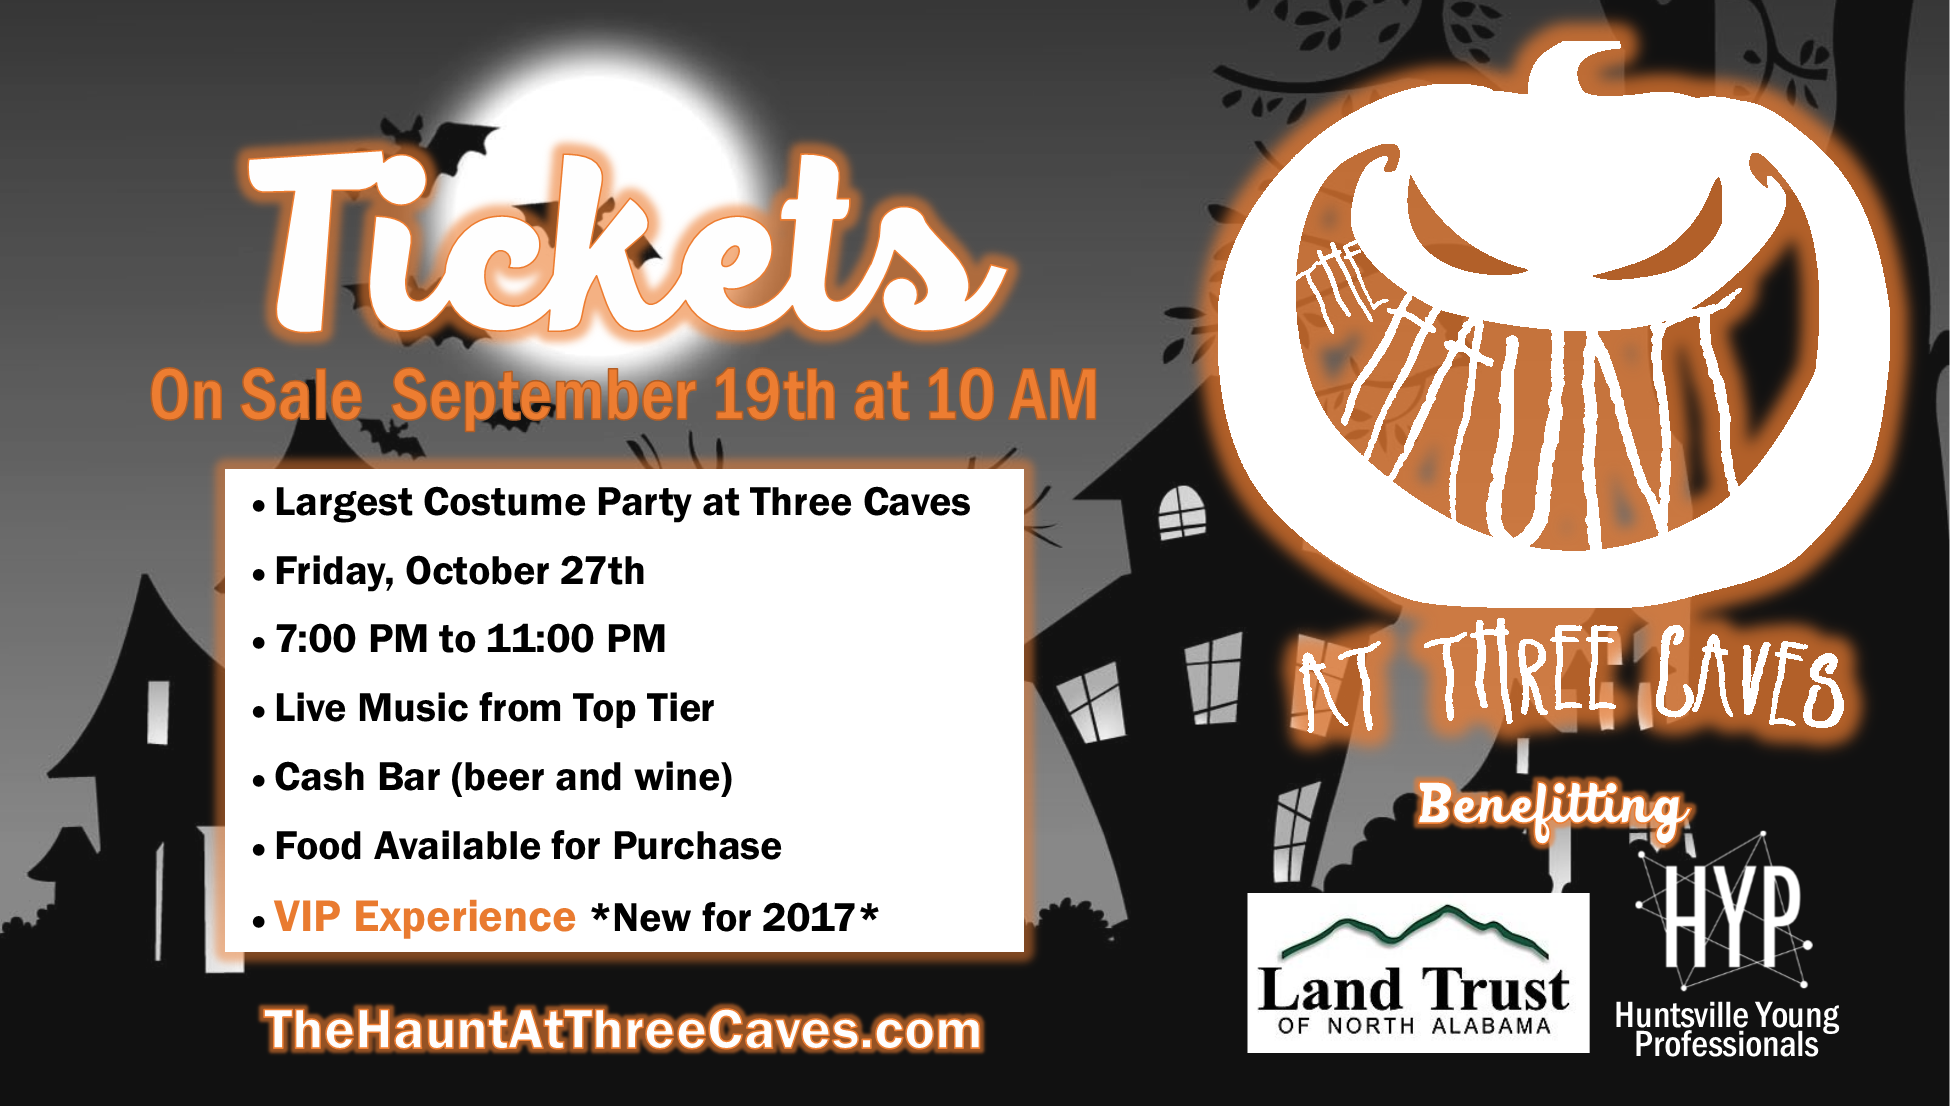 Visit  www.TheHauntAtThreeCaves.com  to learn more.